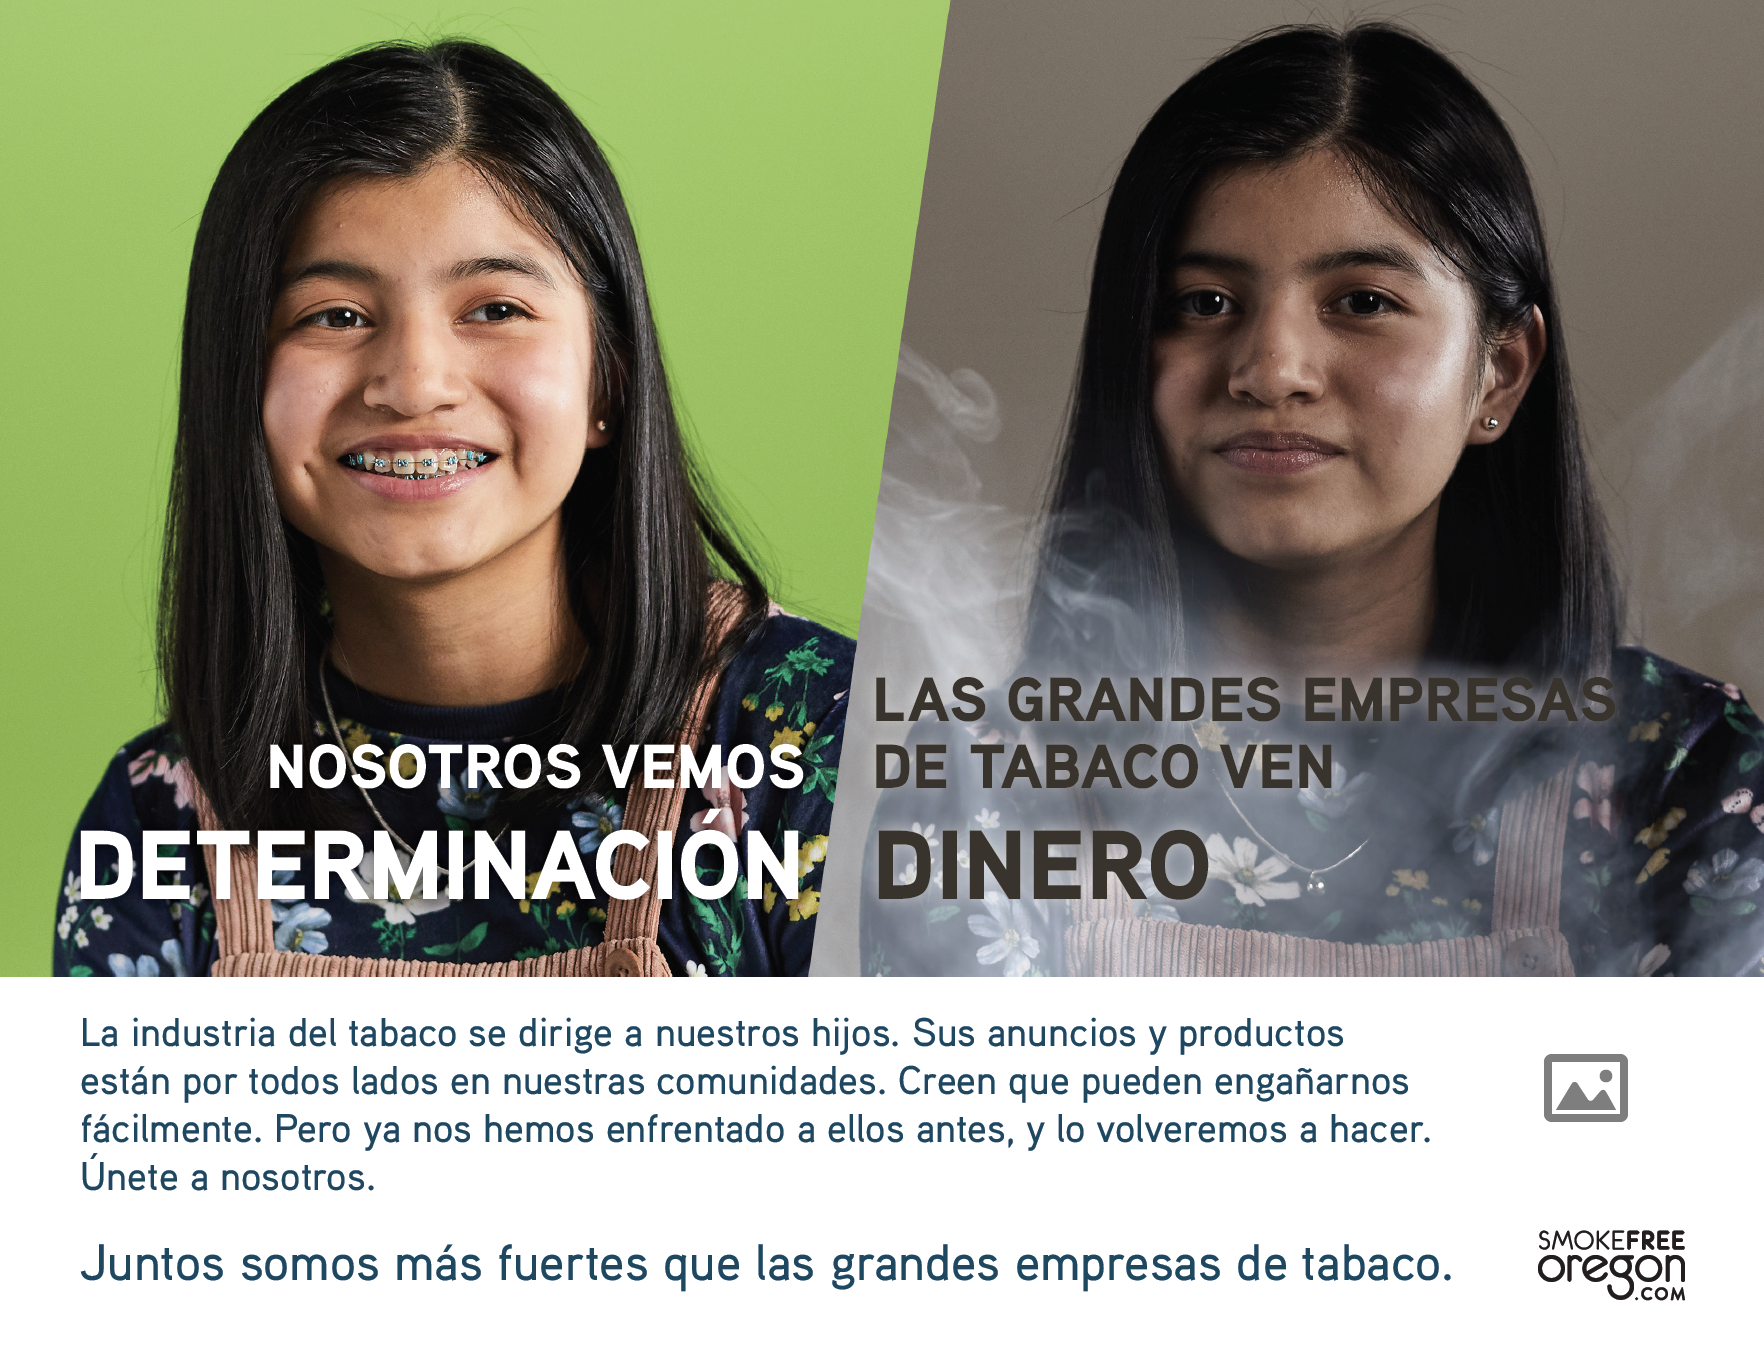 In Spanish. Teenager with bright green background: We see determination. 